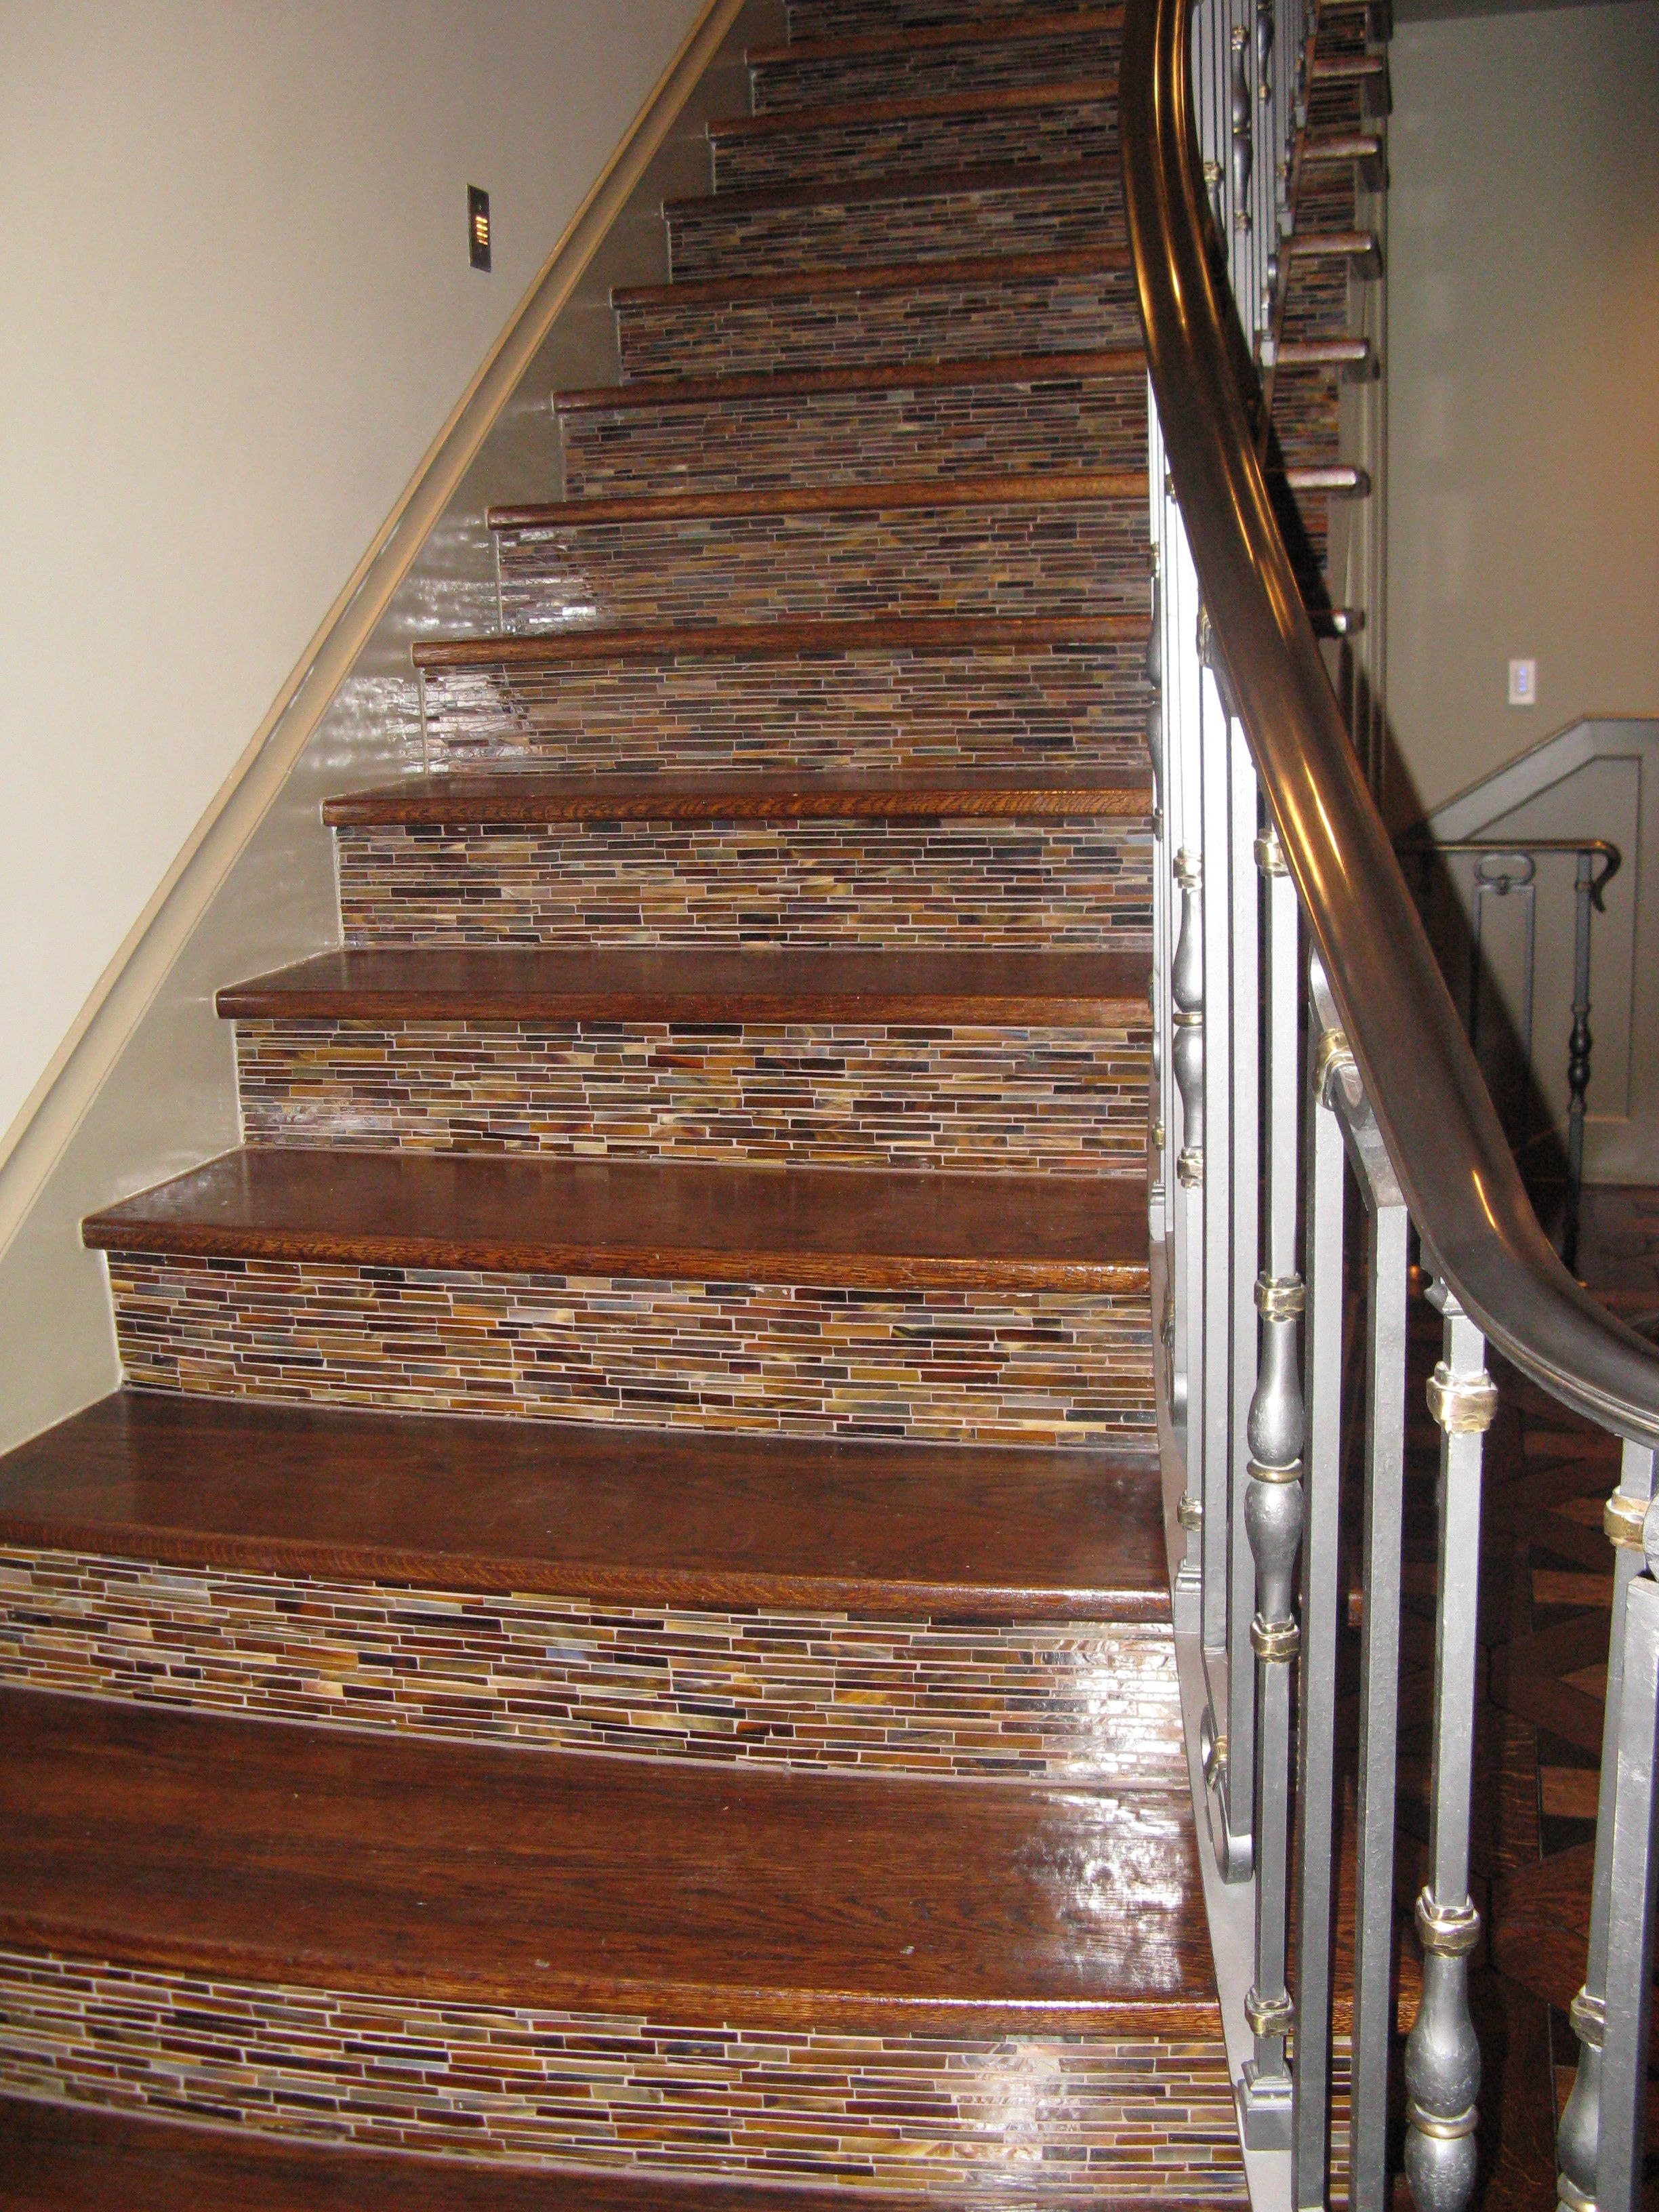 Fabulous Staircase With Tile Up The Risers Staircase   Stair Riser Tiles Designs